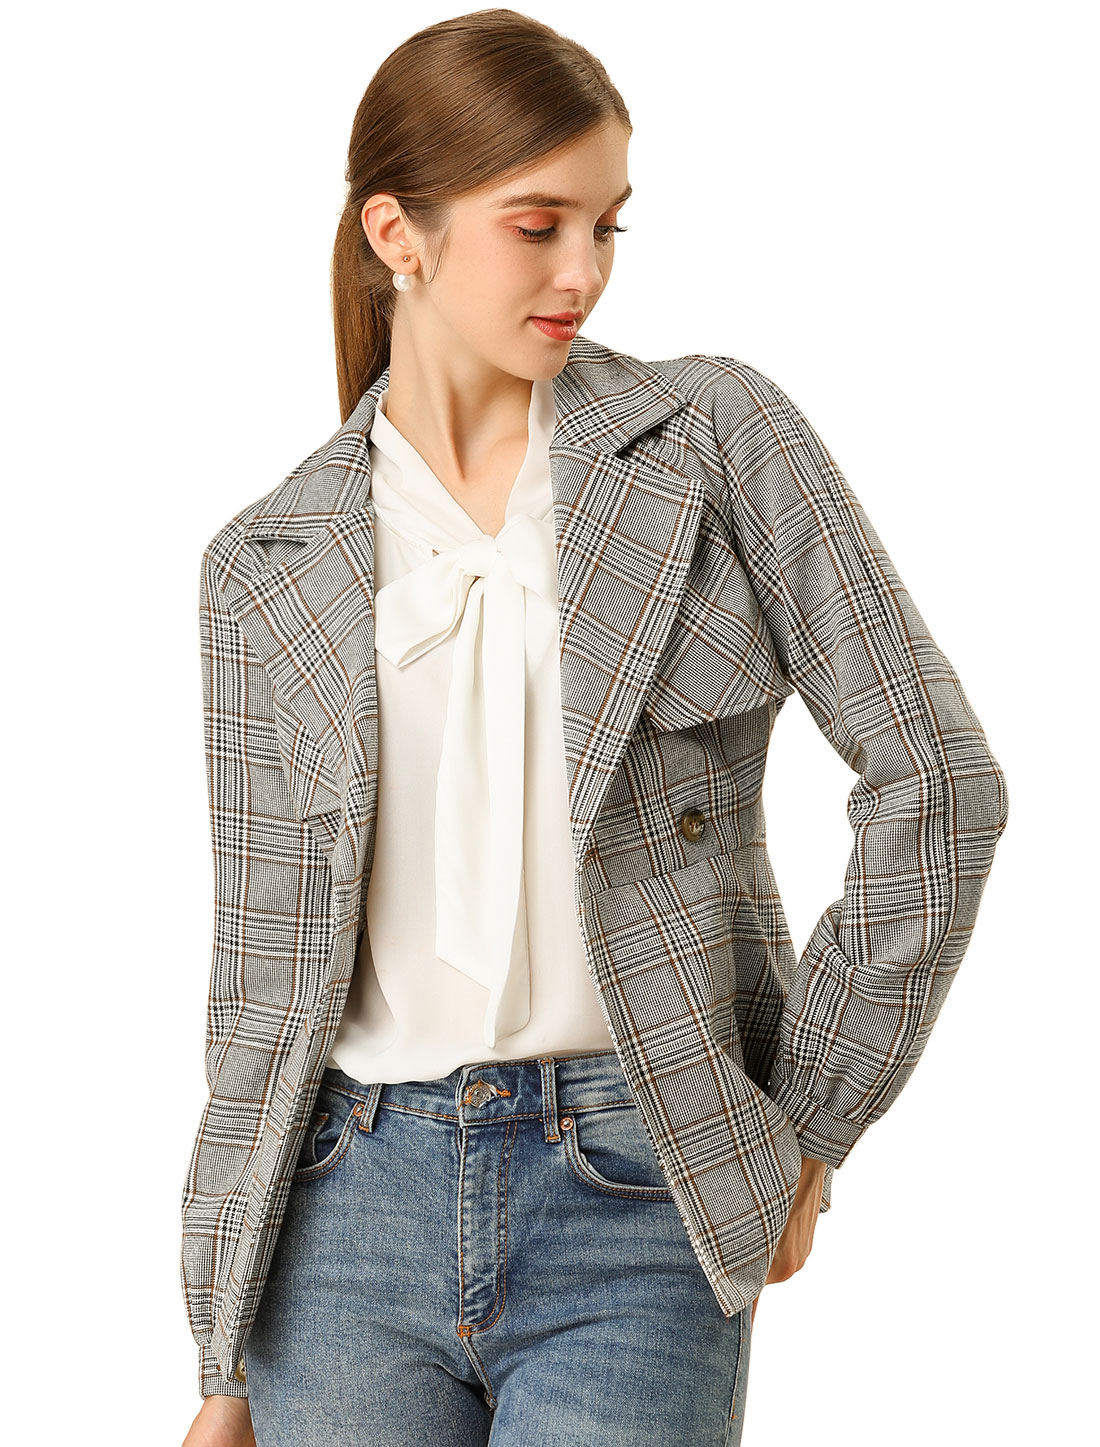 Allegra K Women's Plaid Jacket Button Outwear Checks Work Blazer Gray Khaki M